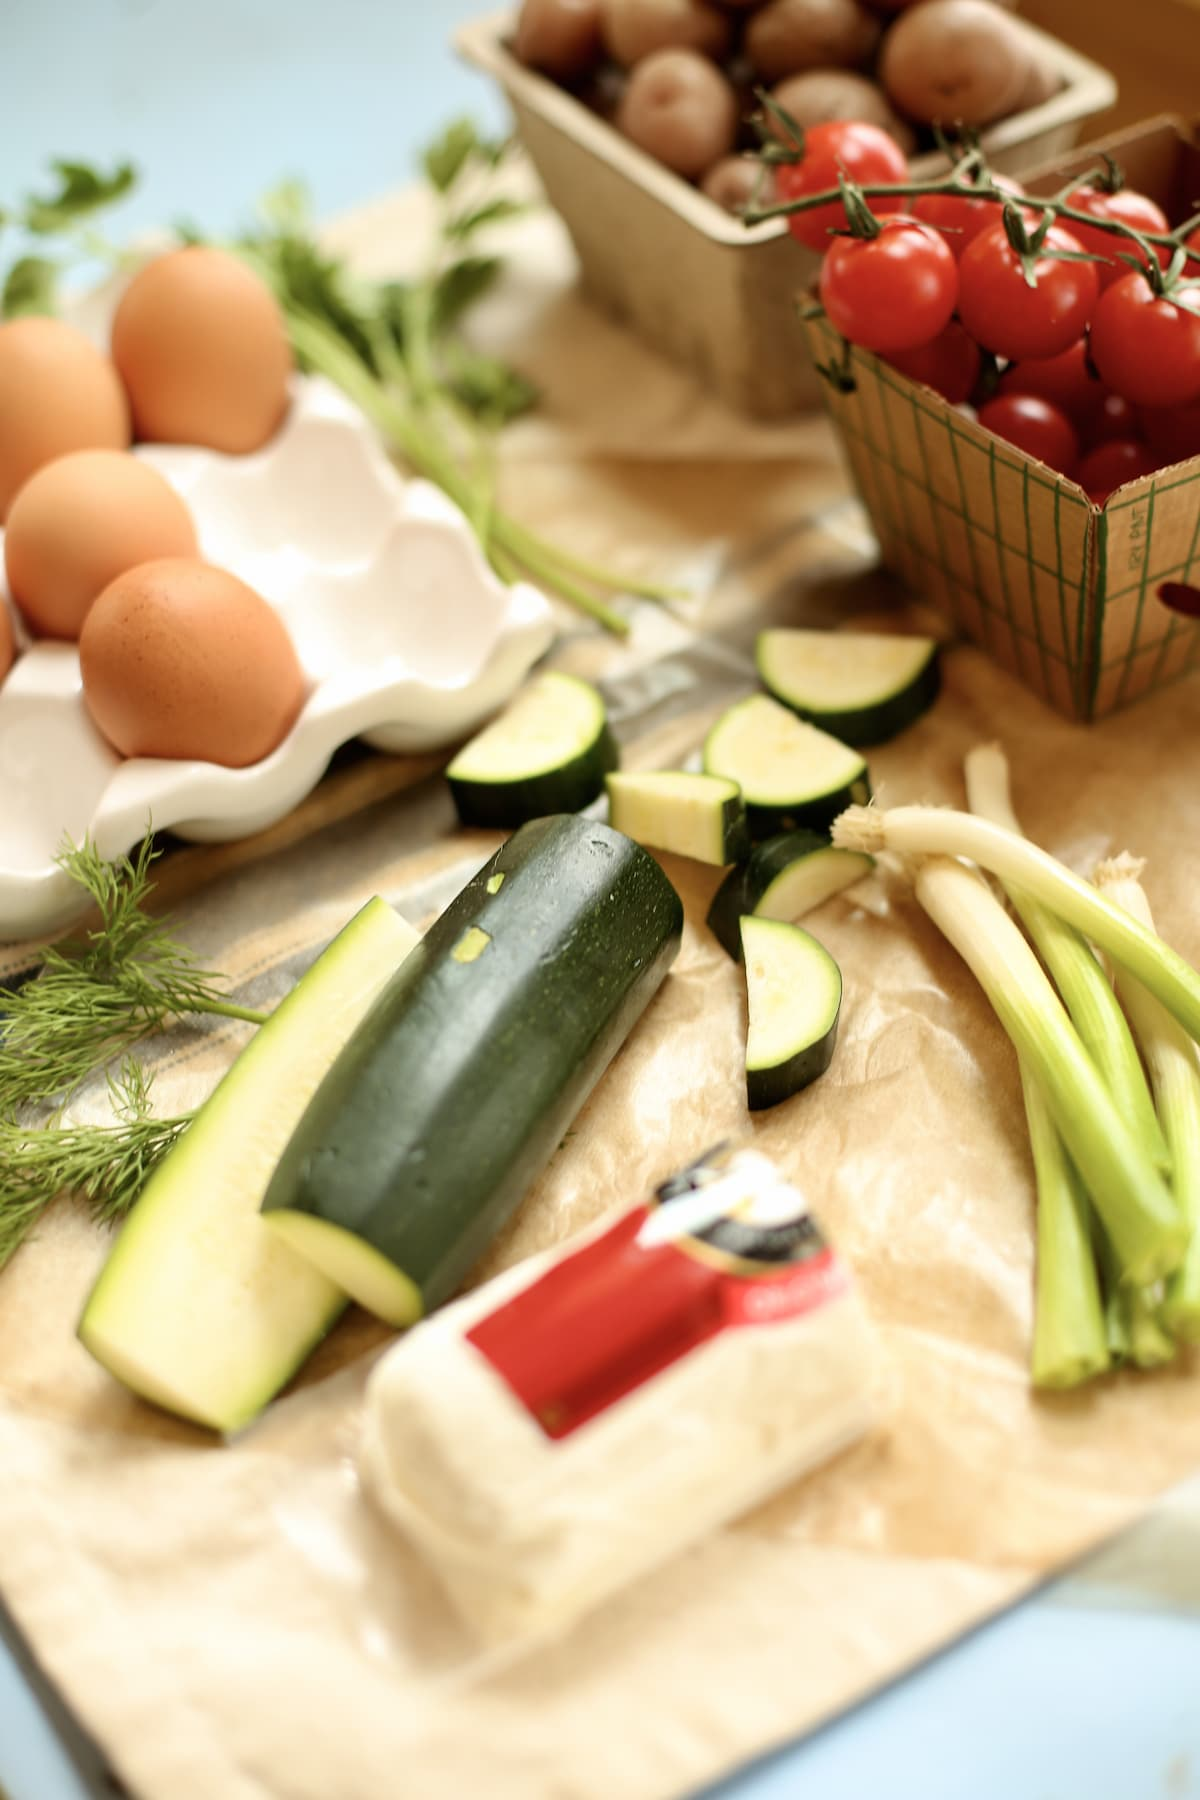 vegetables like zucchini, green onion, goat cheese and eggs on a table being prepped